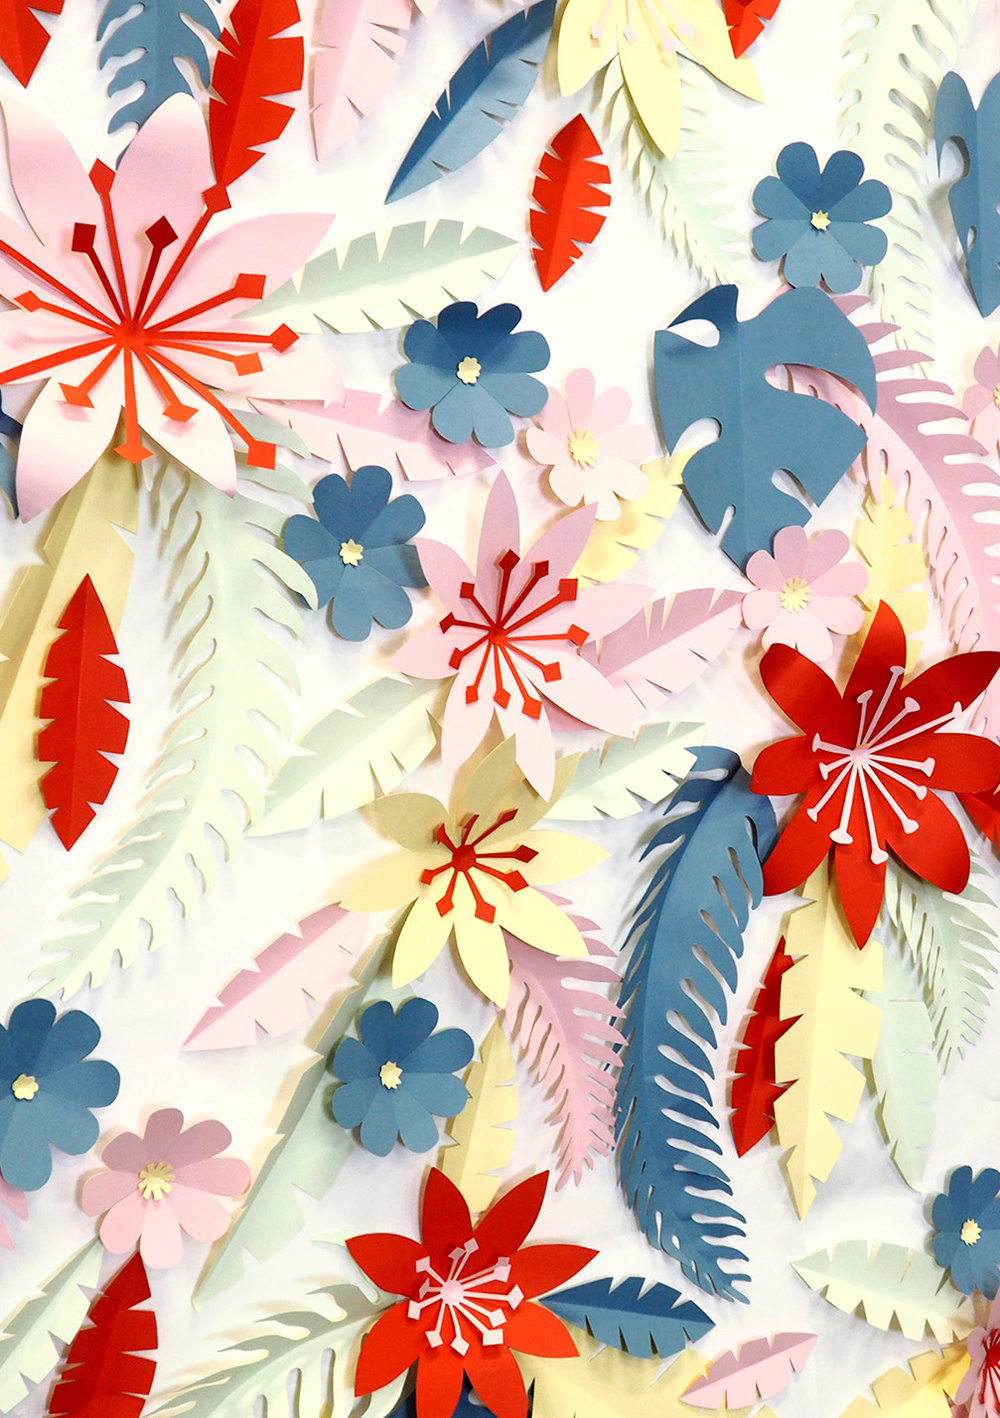 Paper Cut Tropical Flowers and Foliage by Jacqueline Colley